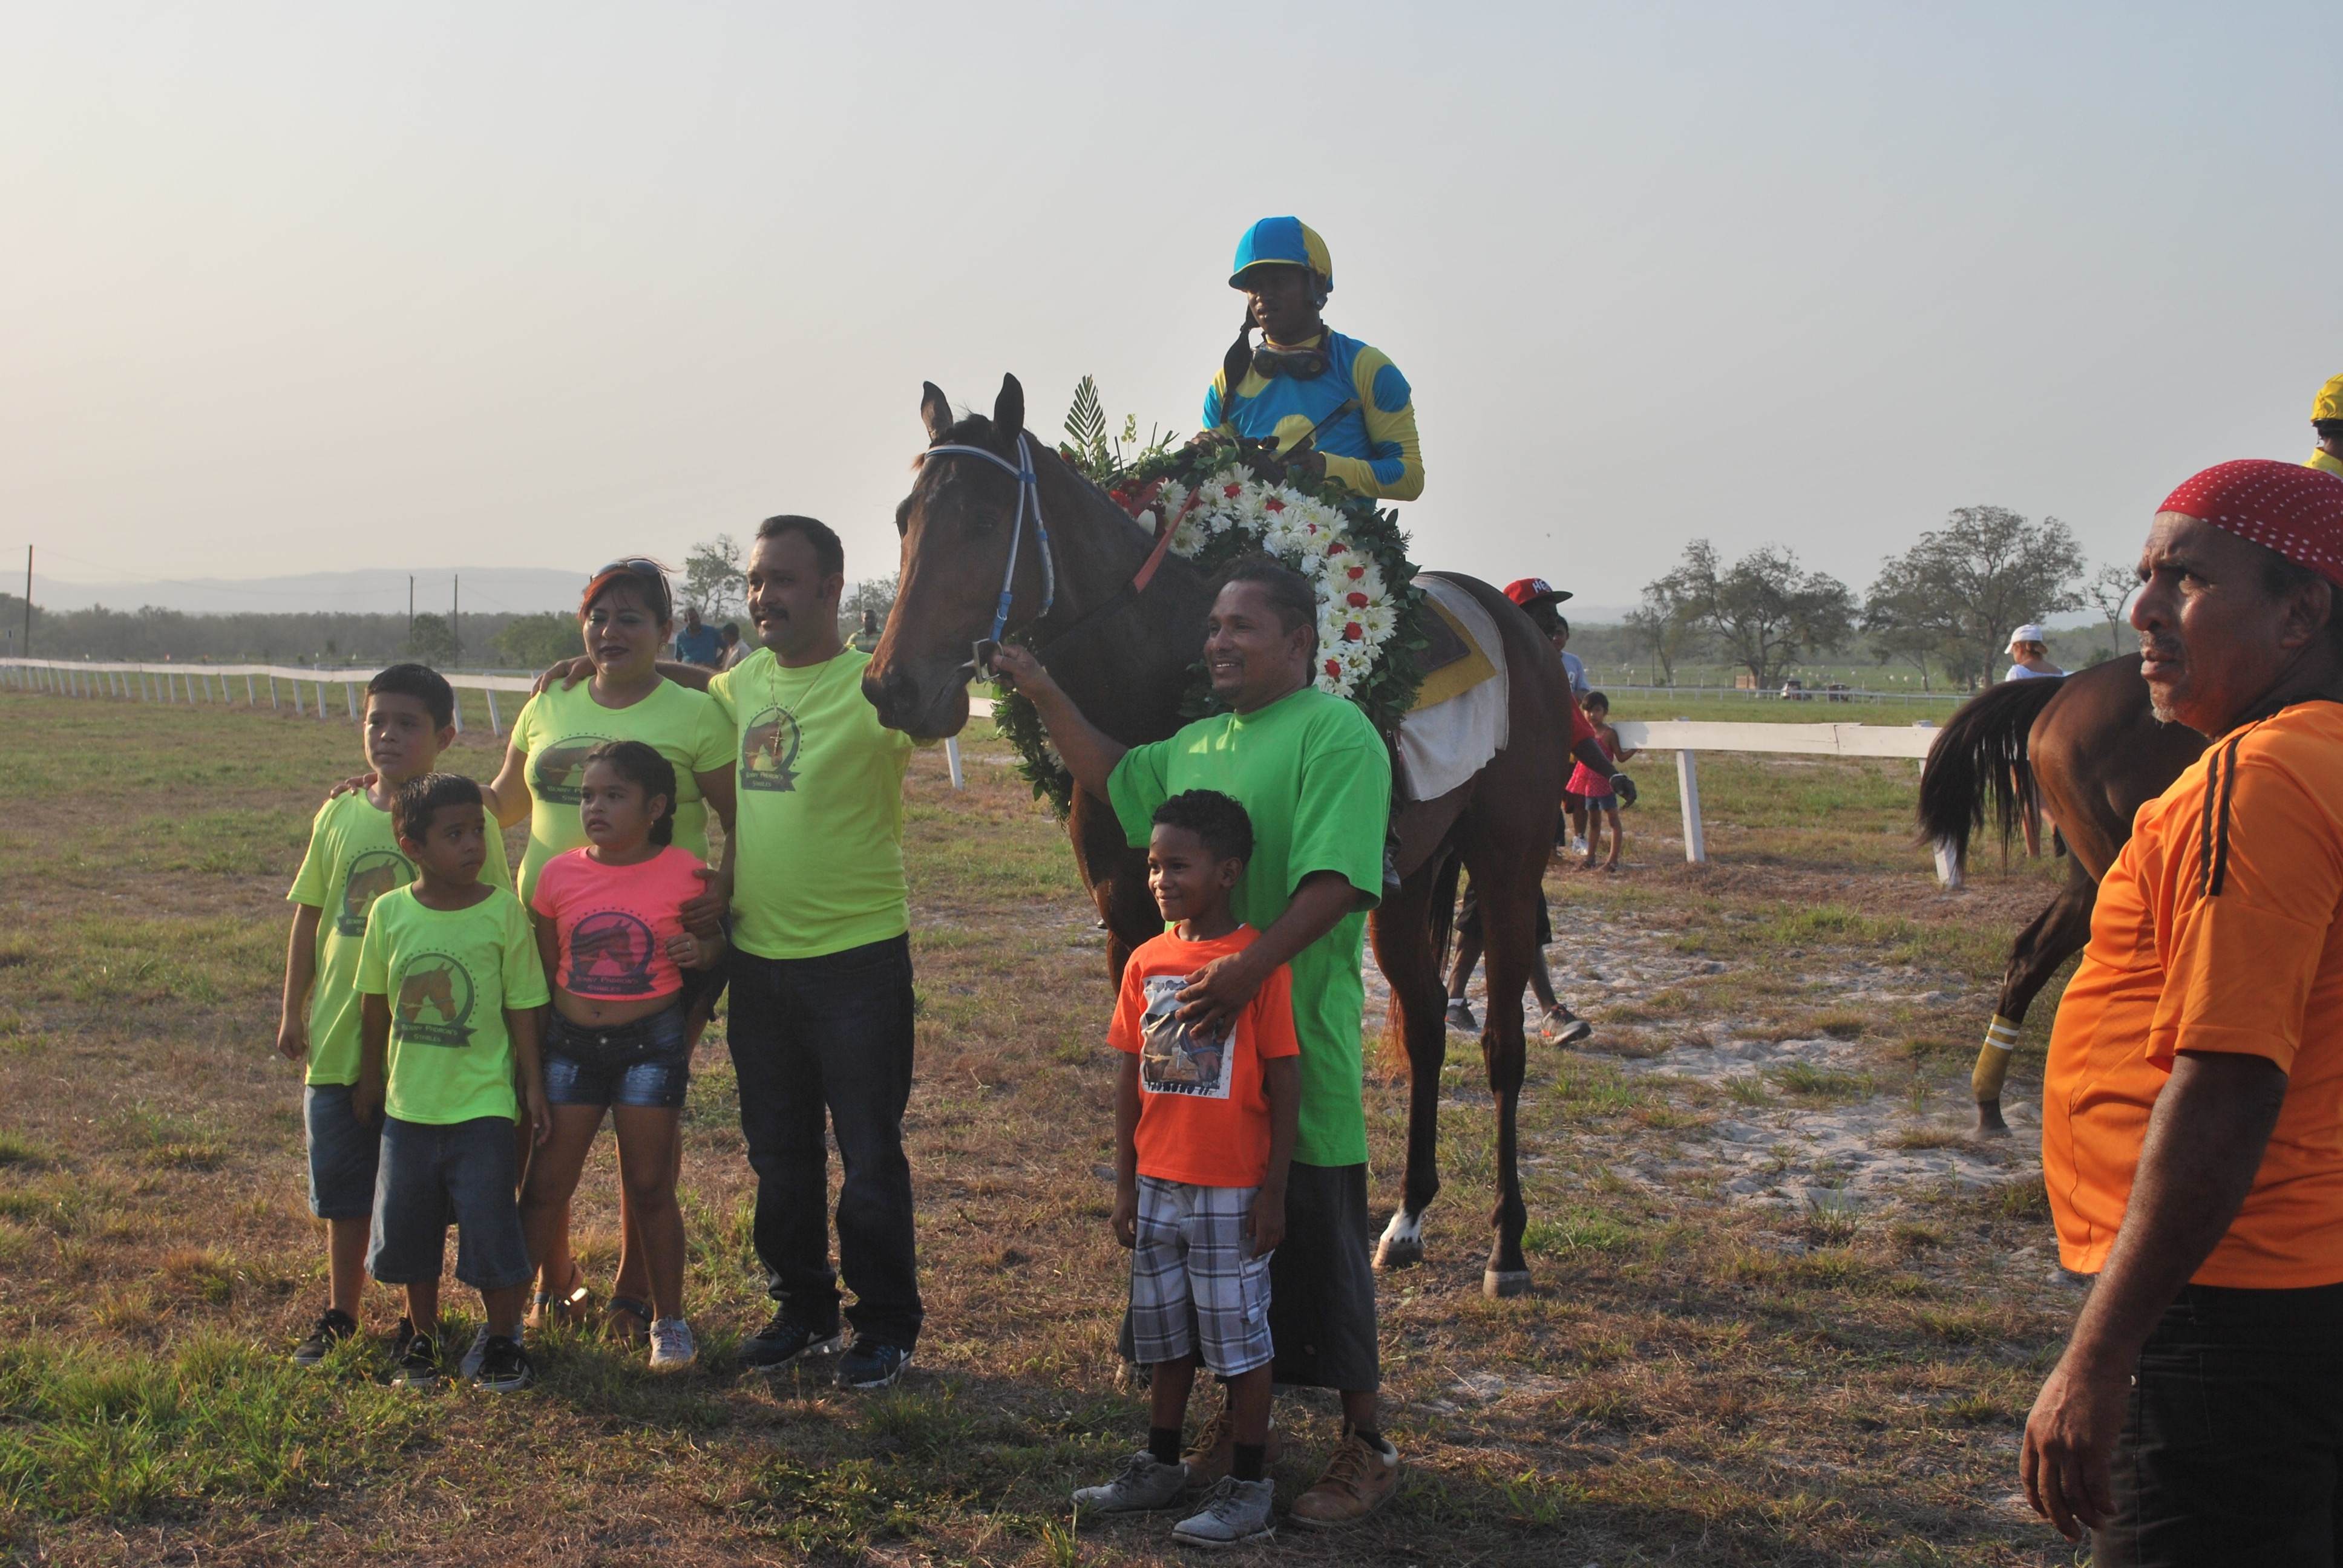 https://horseracingbelize.com/Padrino wins the second leg of the Belize Triple Crown Challenge